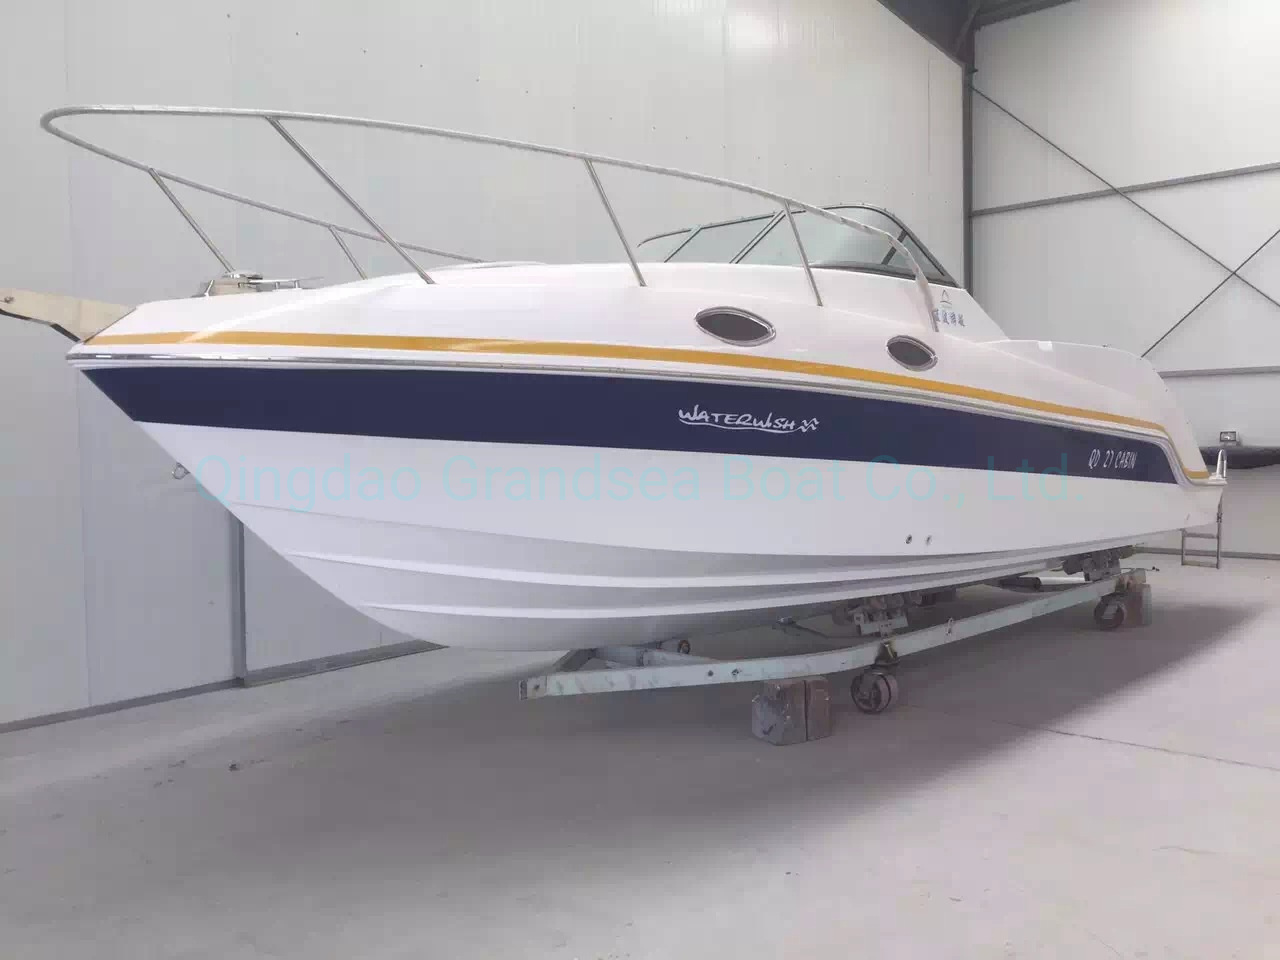 China 6m 20ft Fiberglass Cabin Cruiser Boat For Sale China Boat And Motor Boat Price